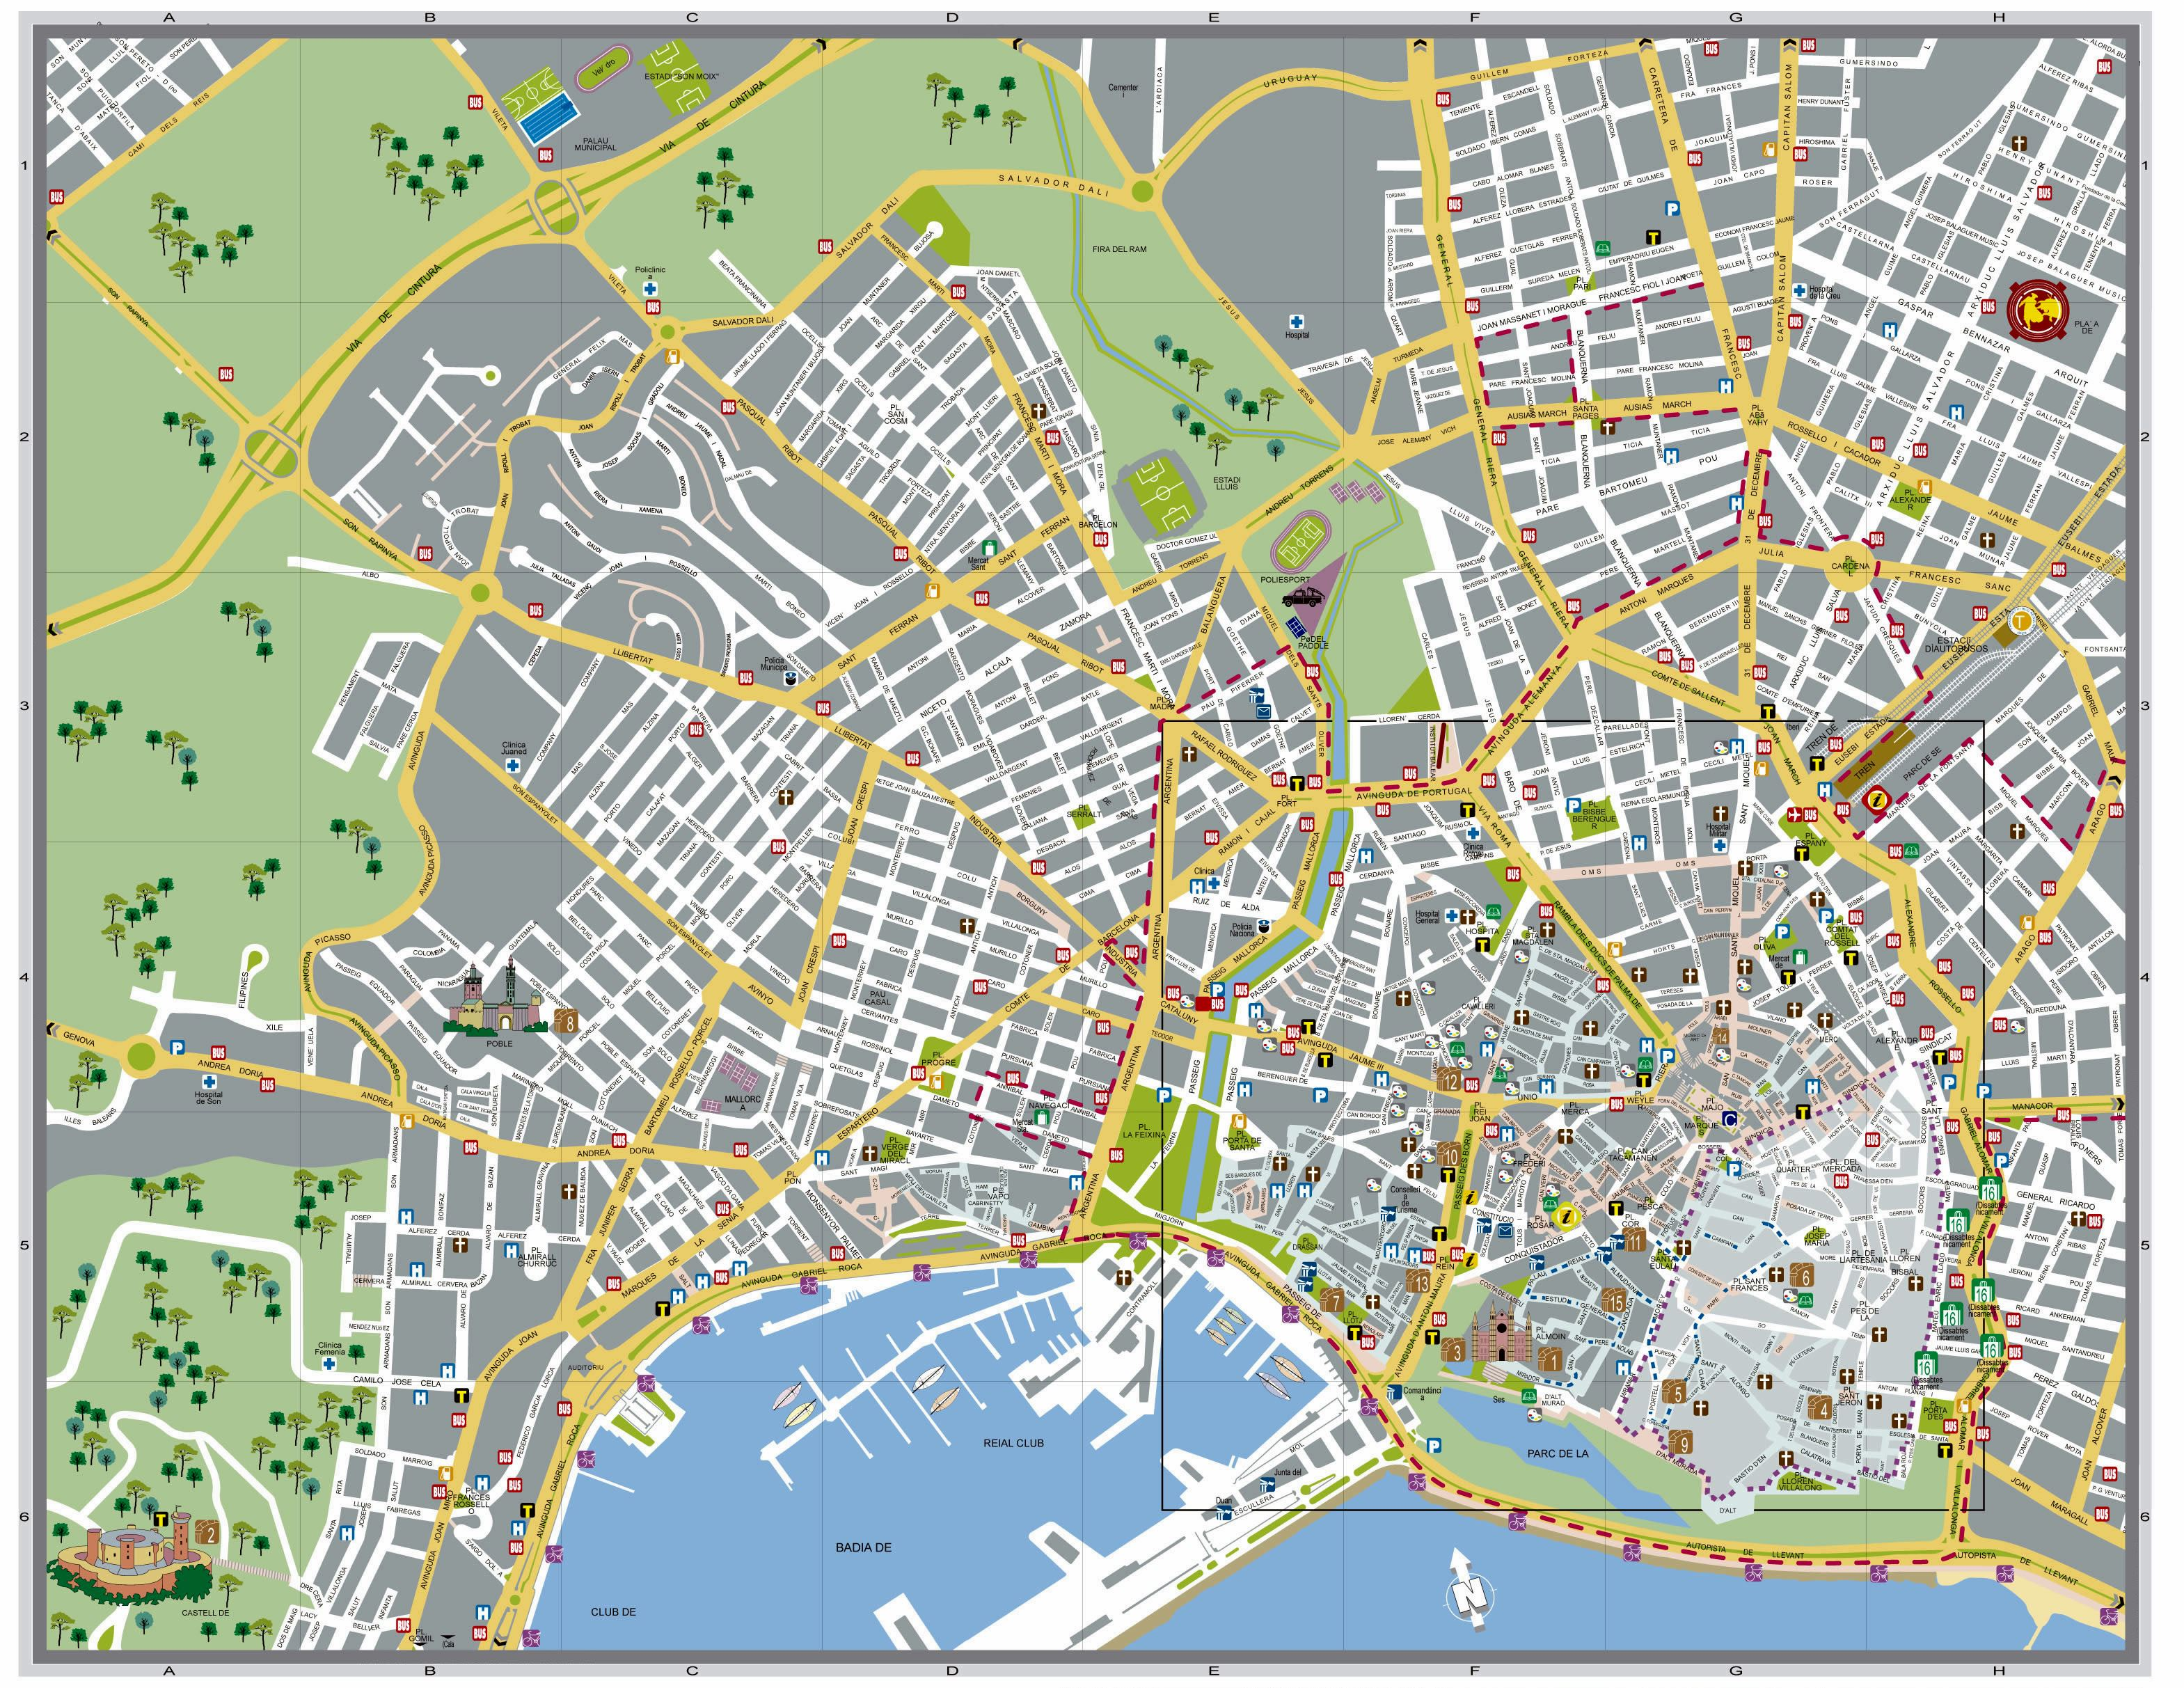 Large Palma de Mallorca Maps for Free Download and Print High